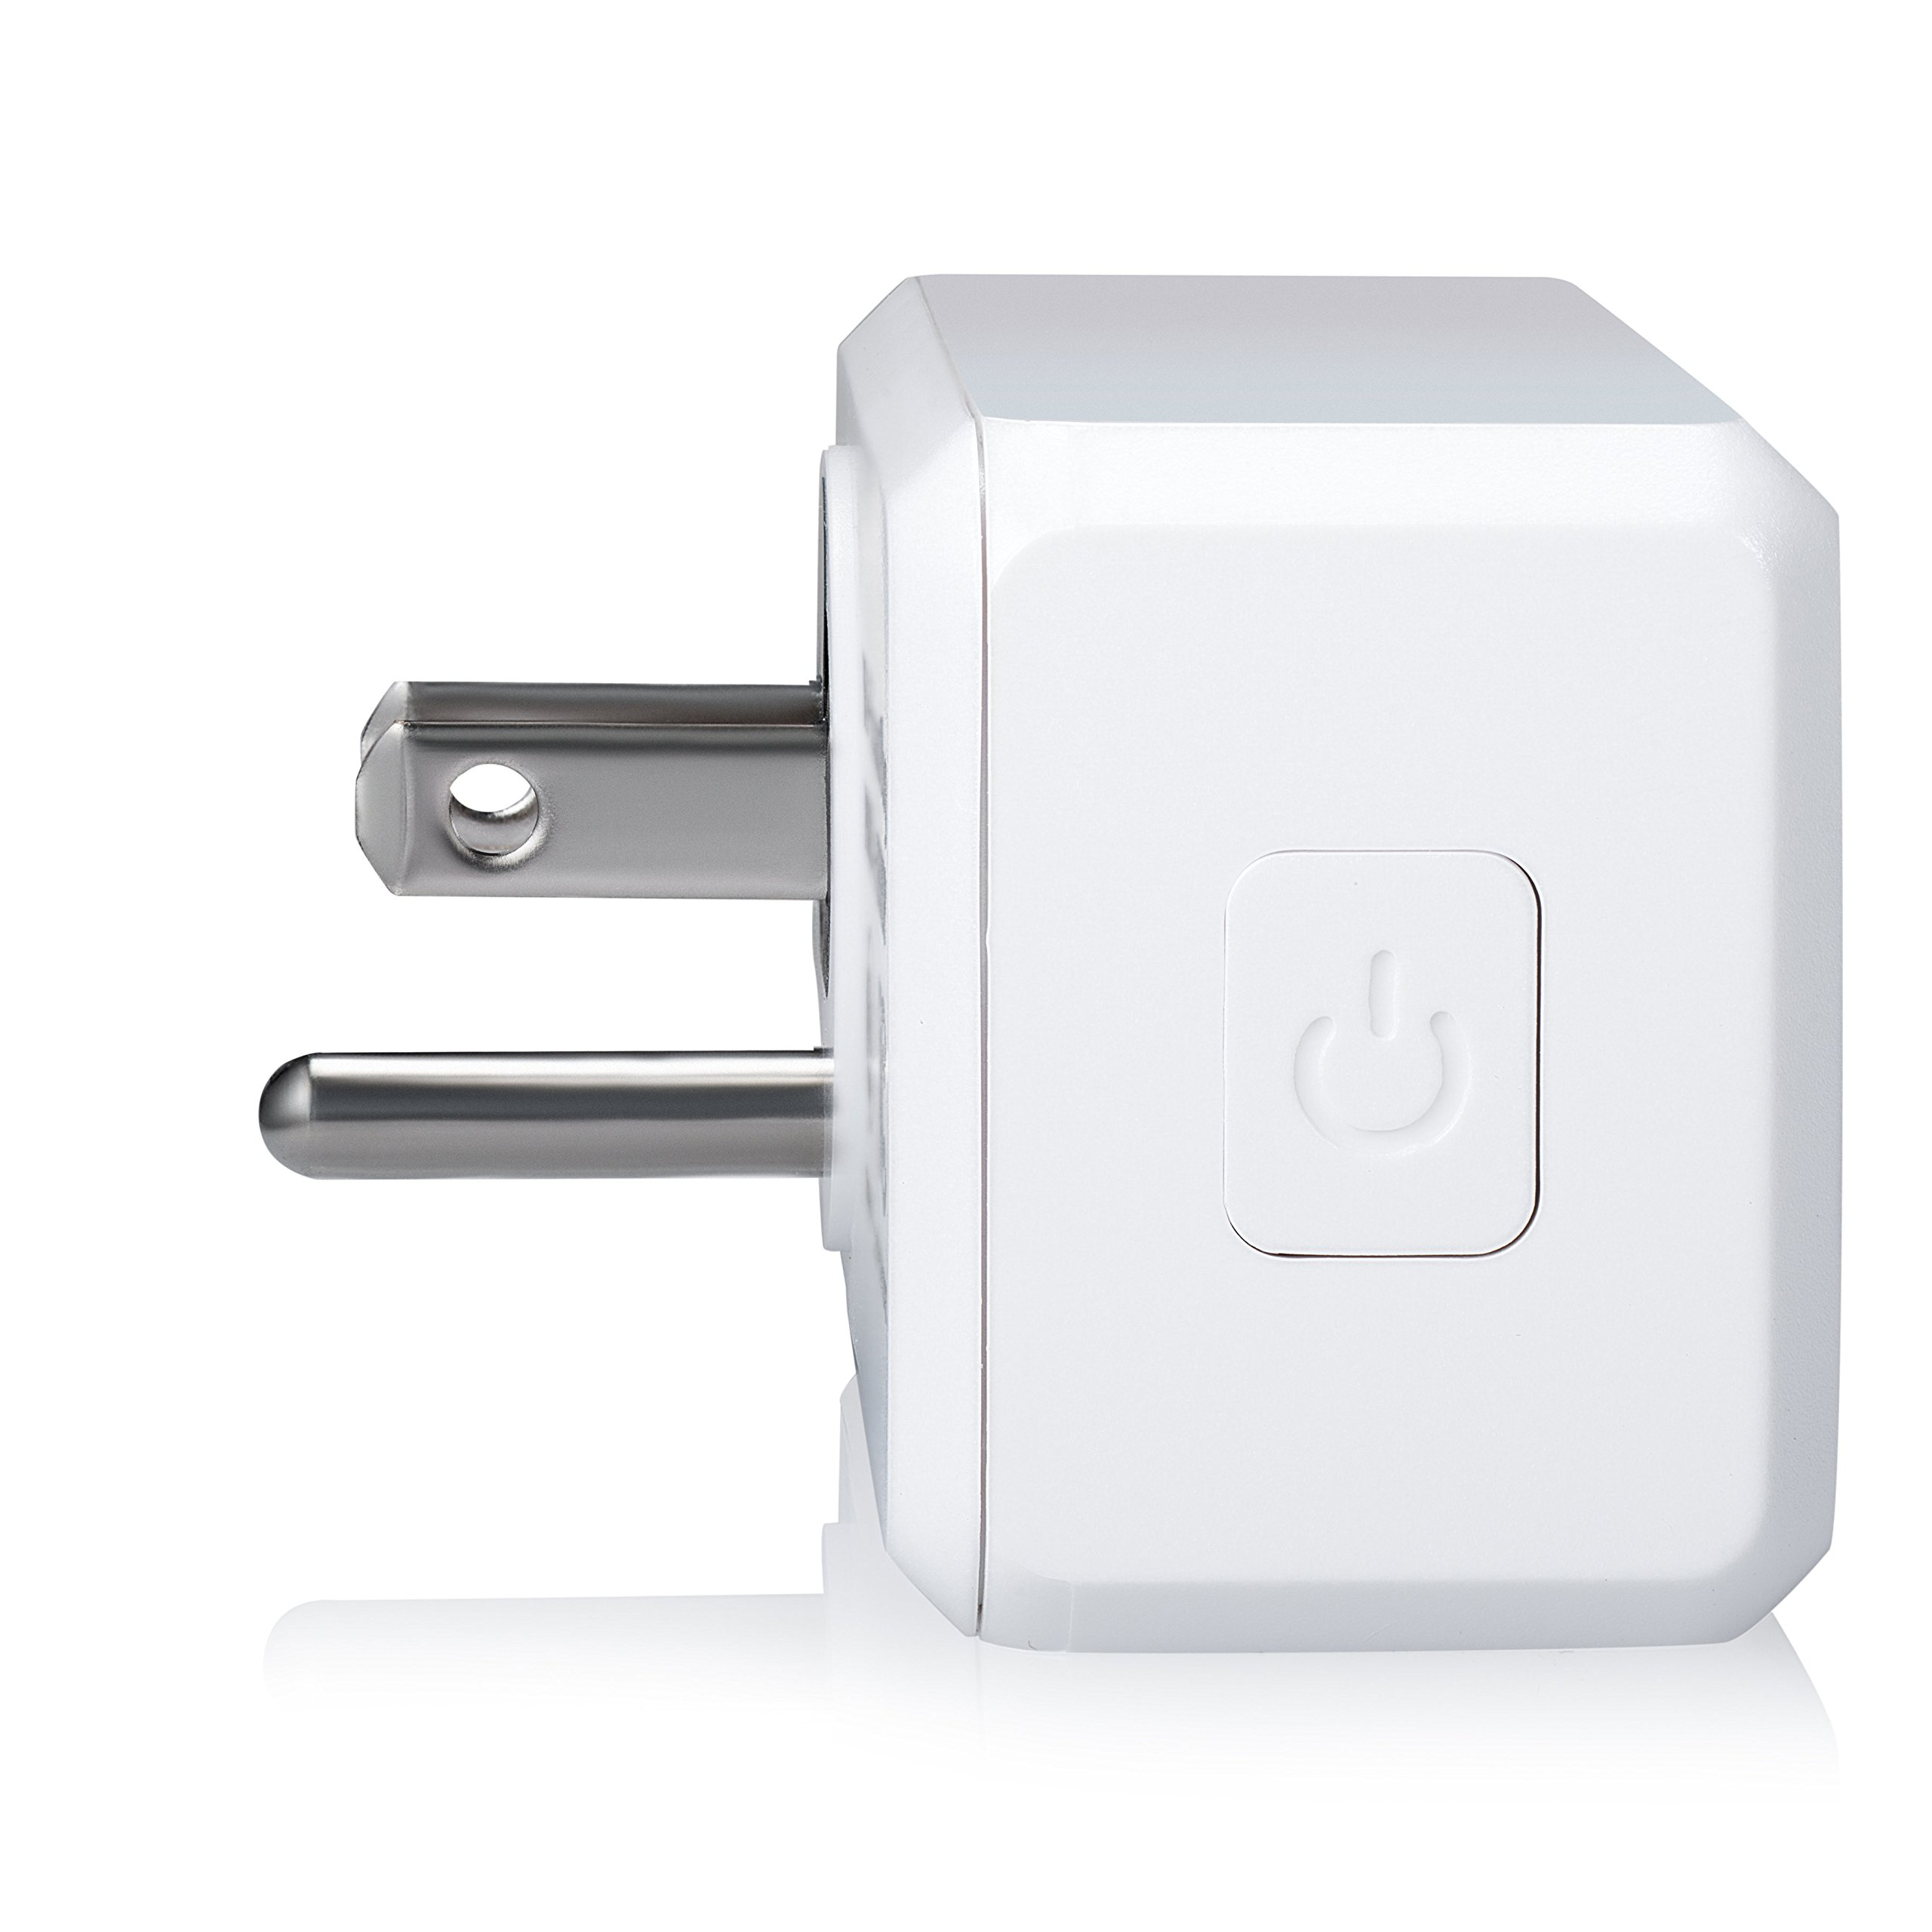 Ora Alexa-Enabled Wi-Fi Mini Smart Plug, White (Pack of 2) by ORA (Image #4)